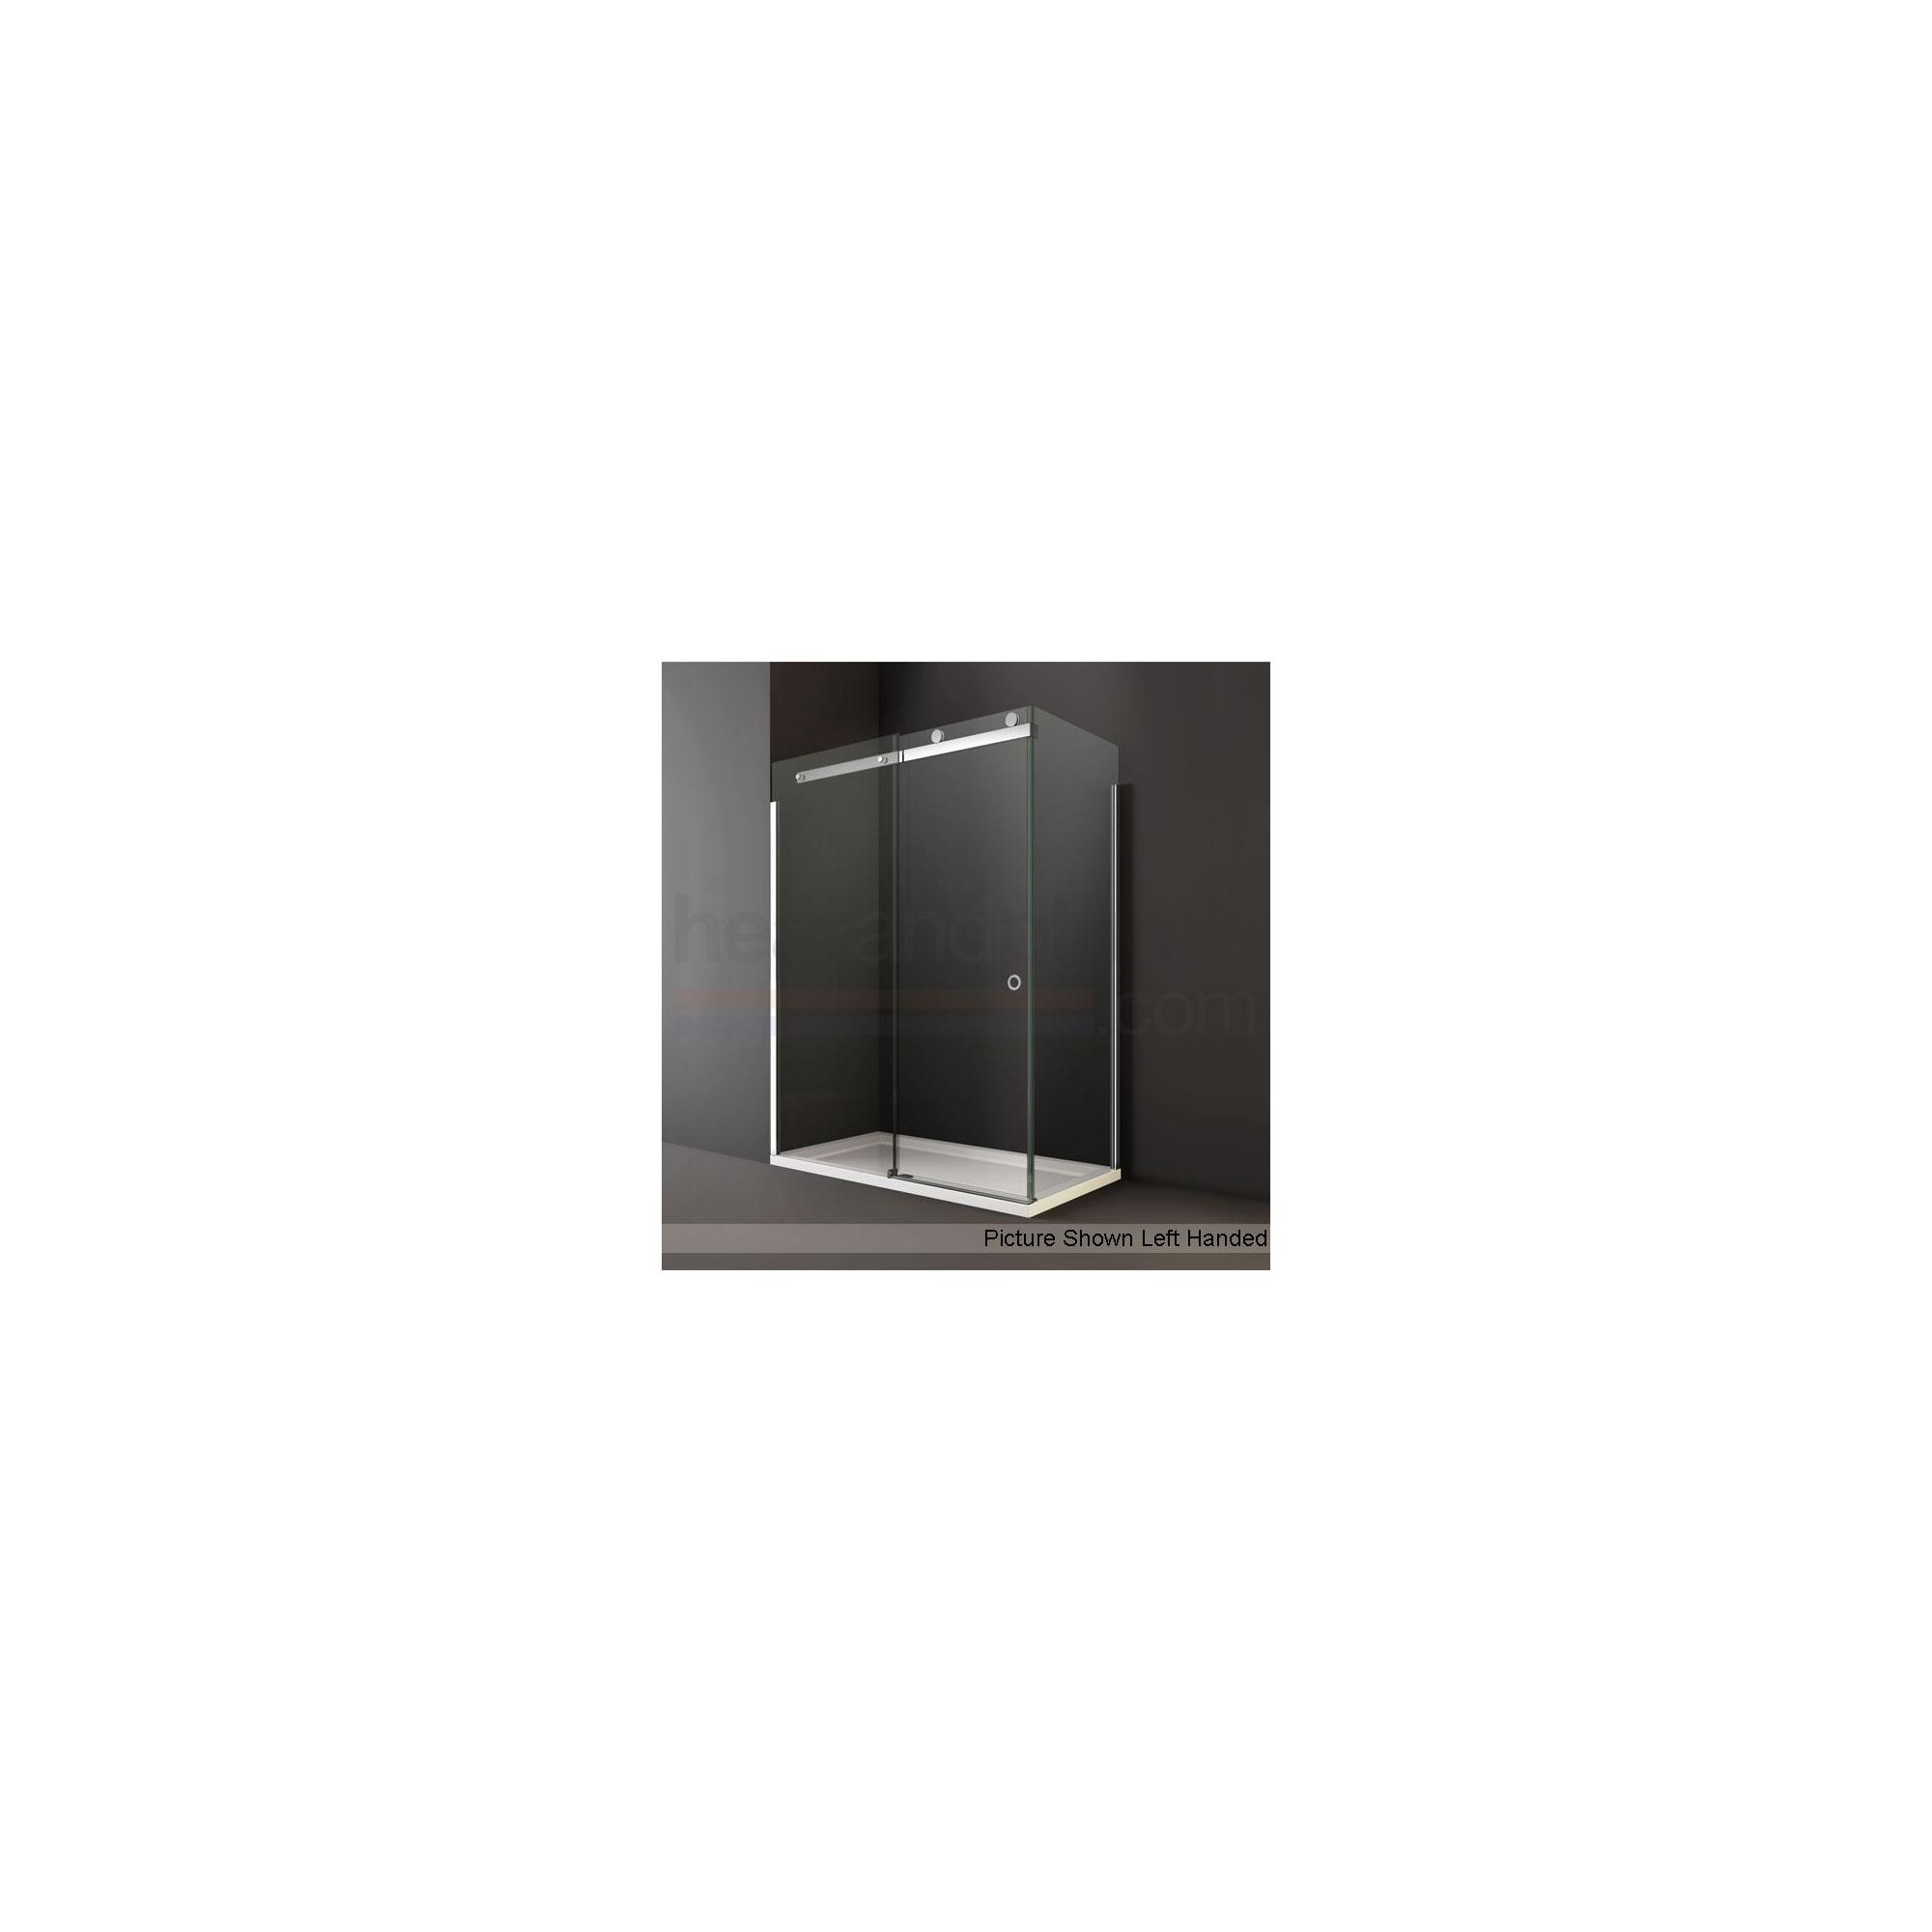 Merlyn Series 10 Sliding Door Shower Enclosure, 1100mm x 800mm, Low Profile Tray, 10mm Glass at Tesco Direct